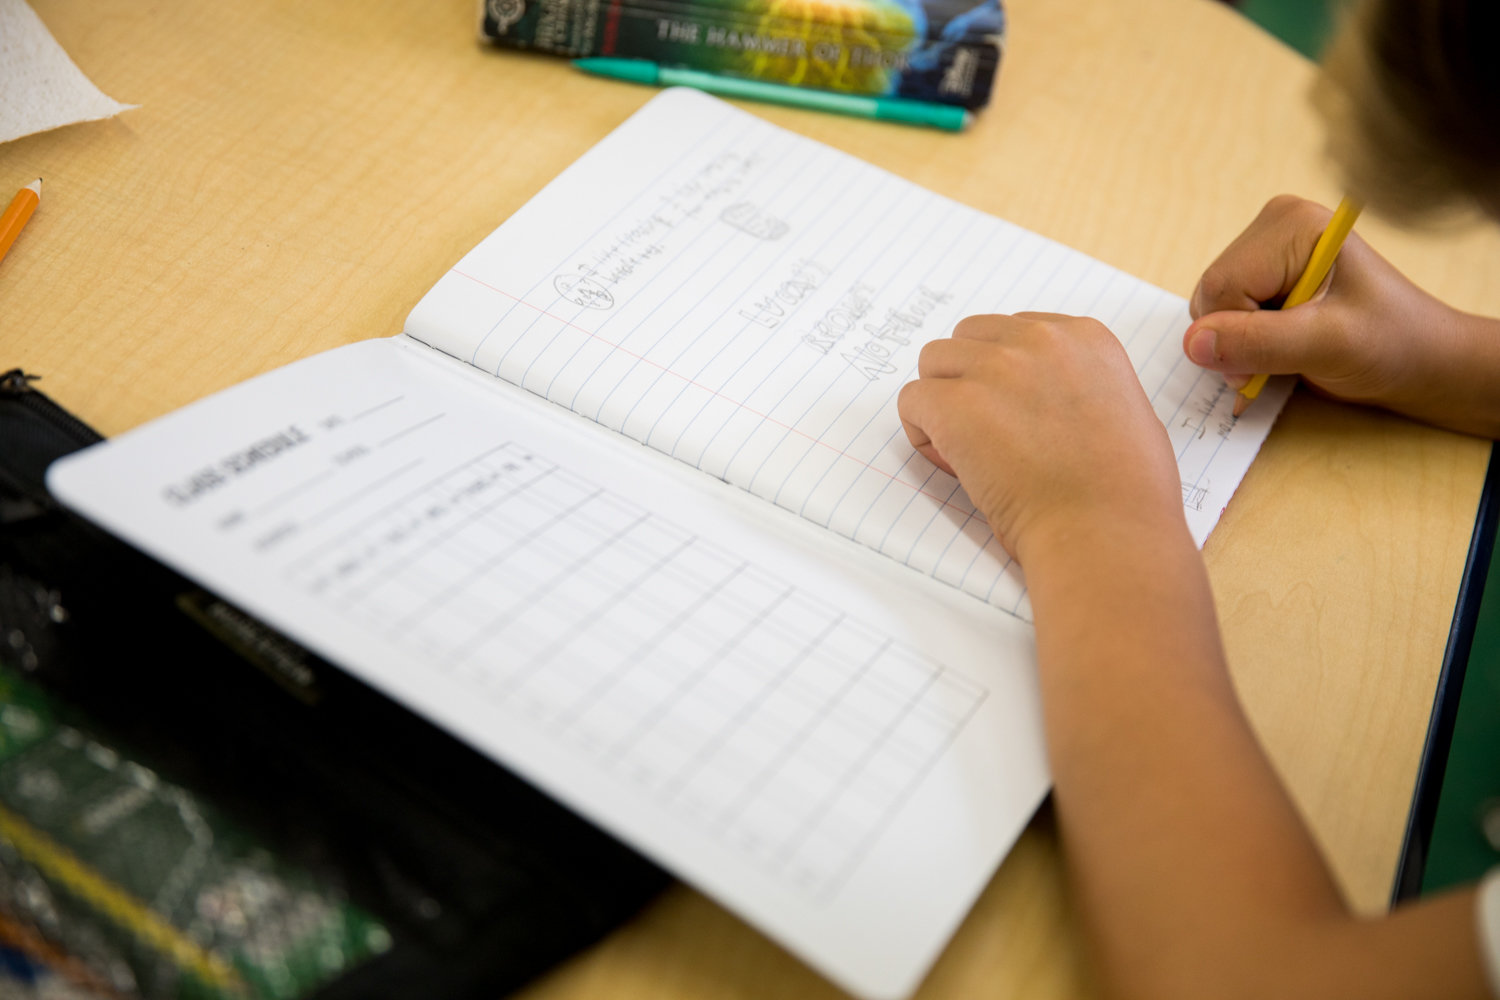 A student in a gifted and talented fifth grade class at P.S. 24 works on an assignment. Gifted and talented programs have come under the scrutiny of Mayor Bill de Blasio as he considers eliminating them because he feels they disproportionately discriminate against black and Latino students.